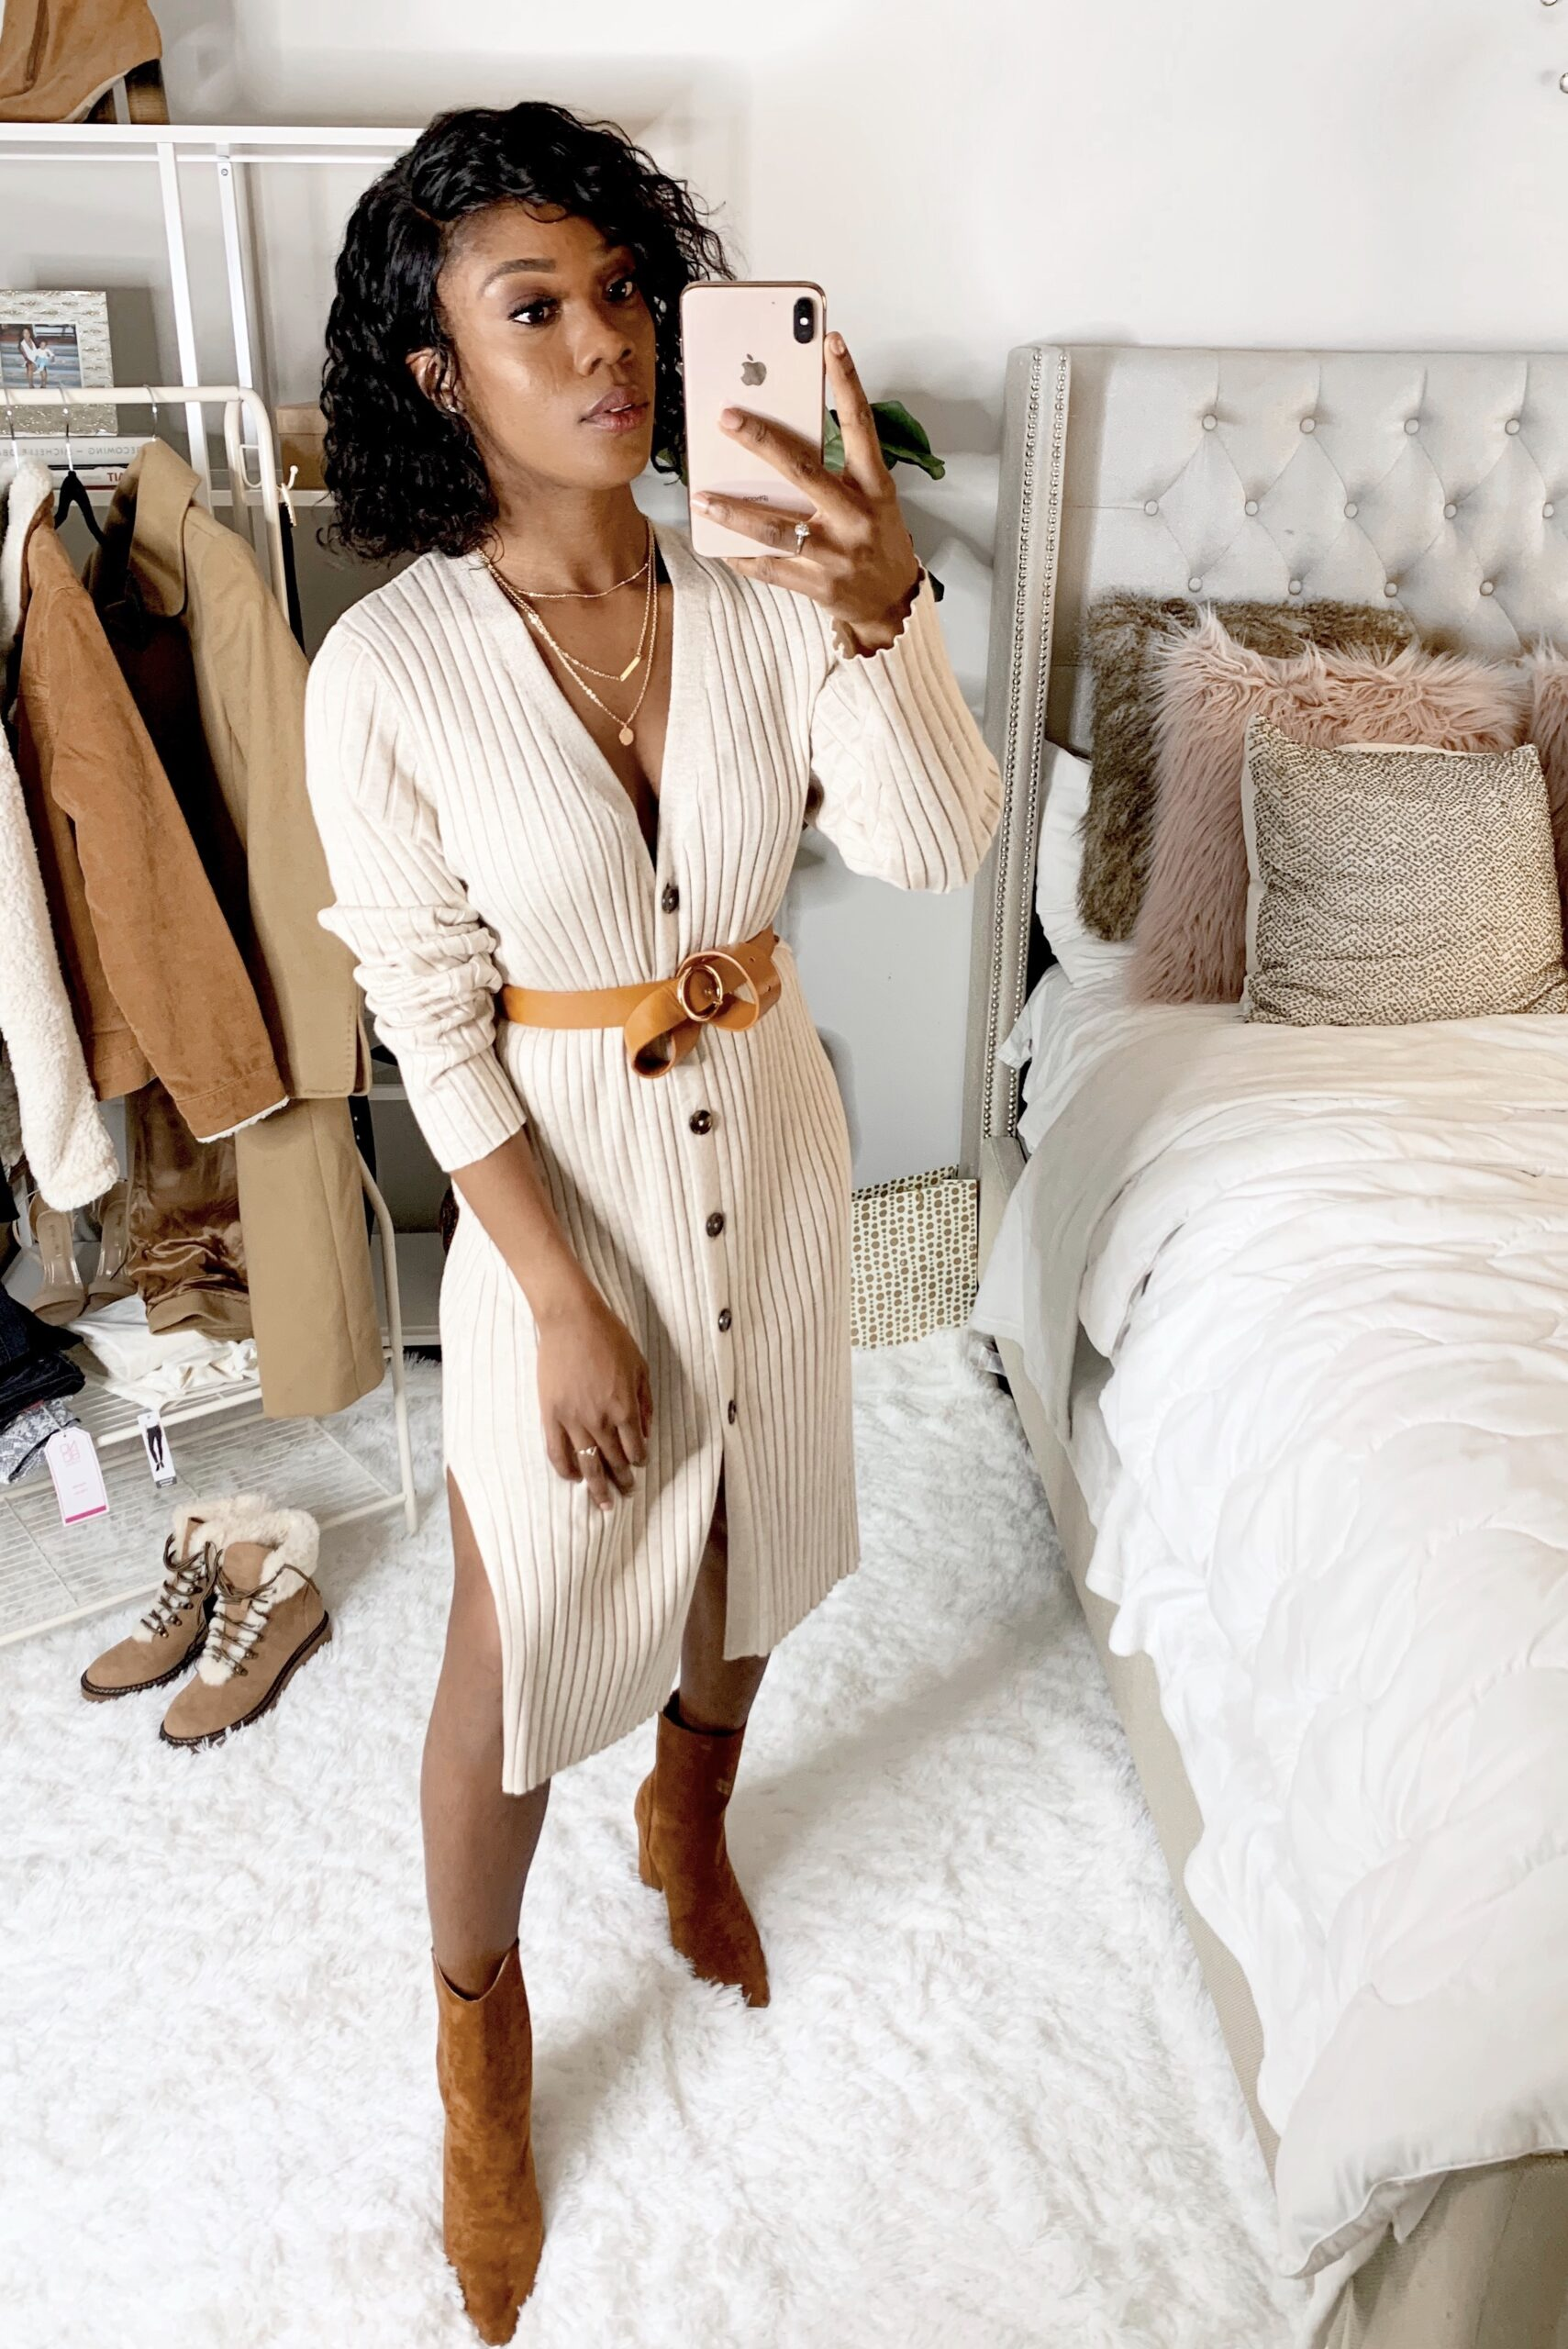 Walmart brand Time and Tru sweater dress. Cute and affordable Fall and winter outfit for date night. I